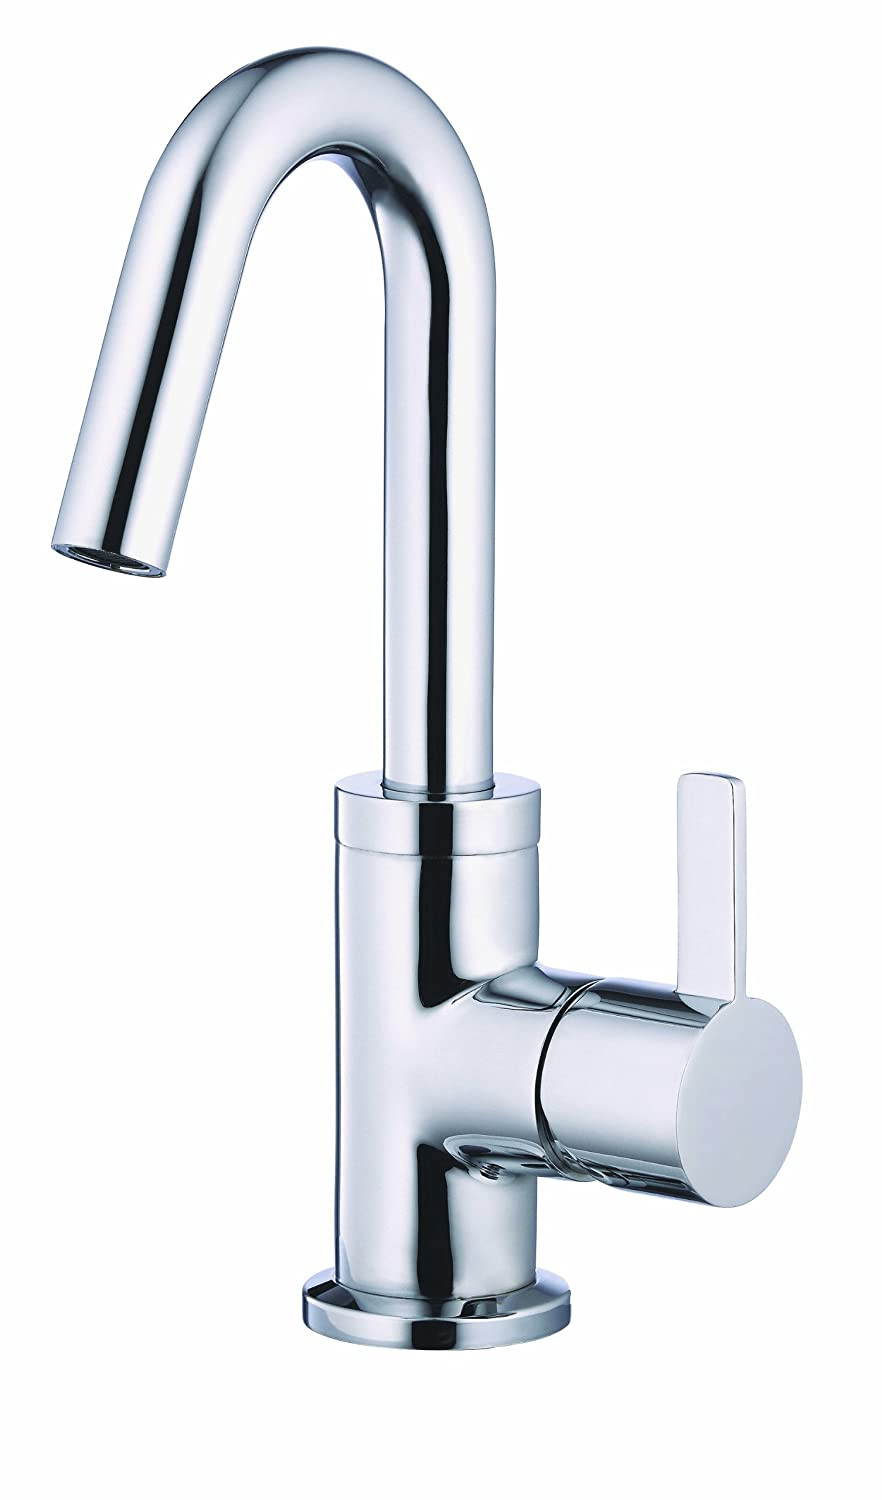 Danze D221530 Almafi Single Handle Lavatory Faucet, Chrome - Touch ...